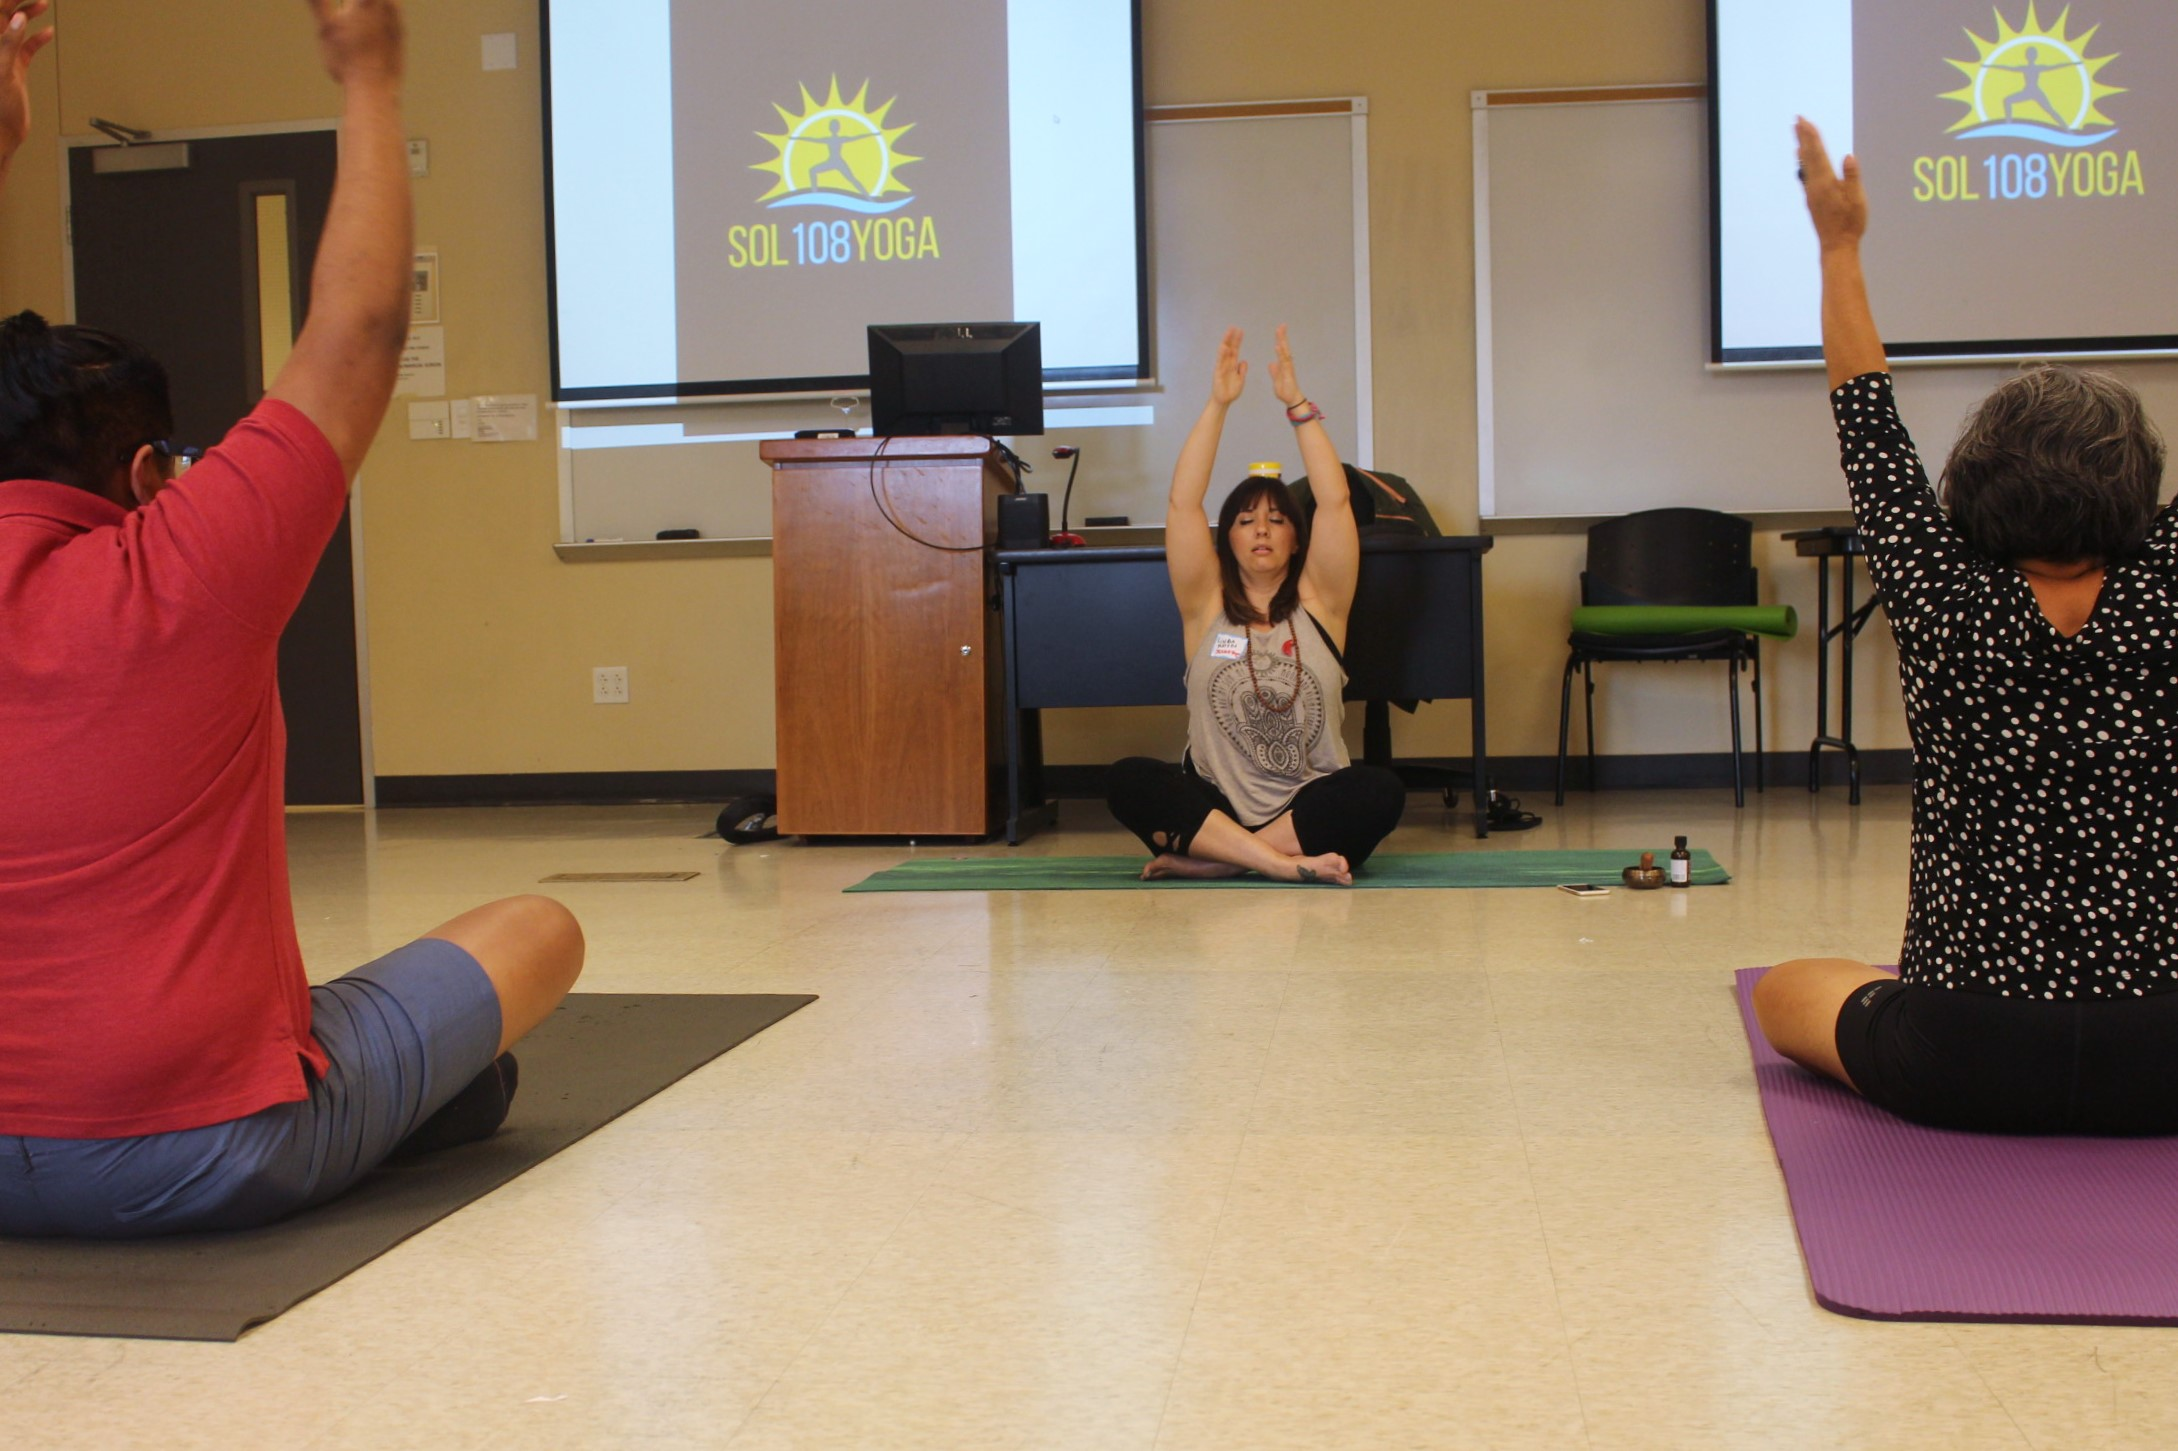 Linda Natera from Sol108Yoga teaches the practice of Hatha Yoga to students at the Bilingual Yoga workshop.